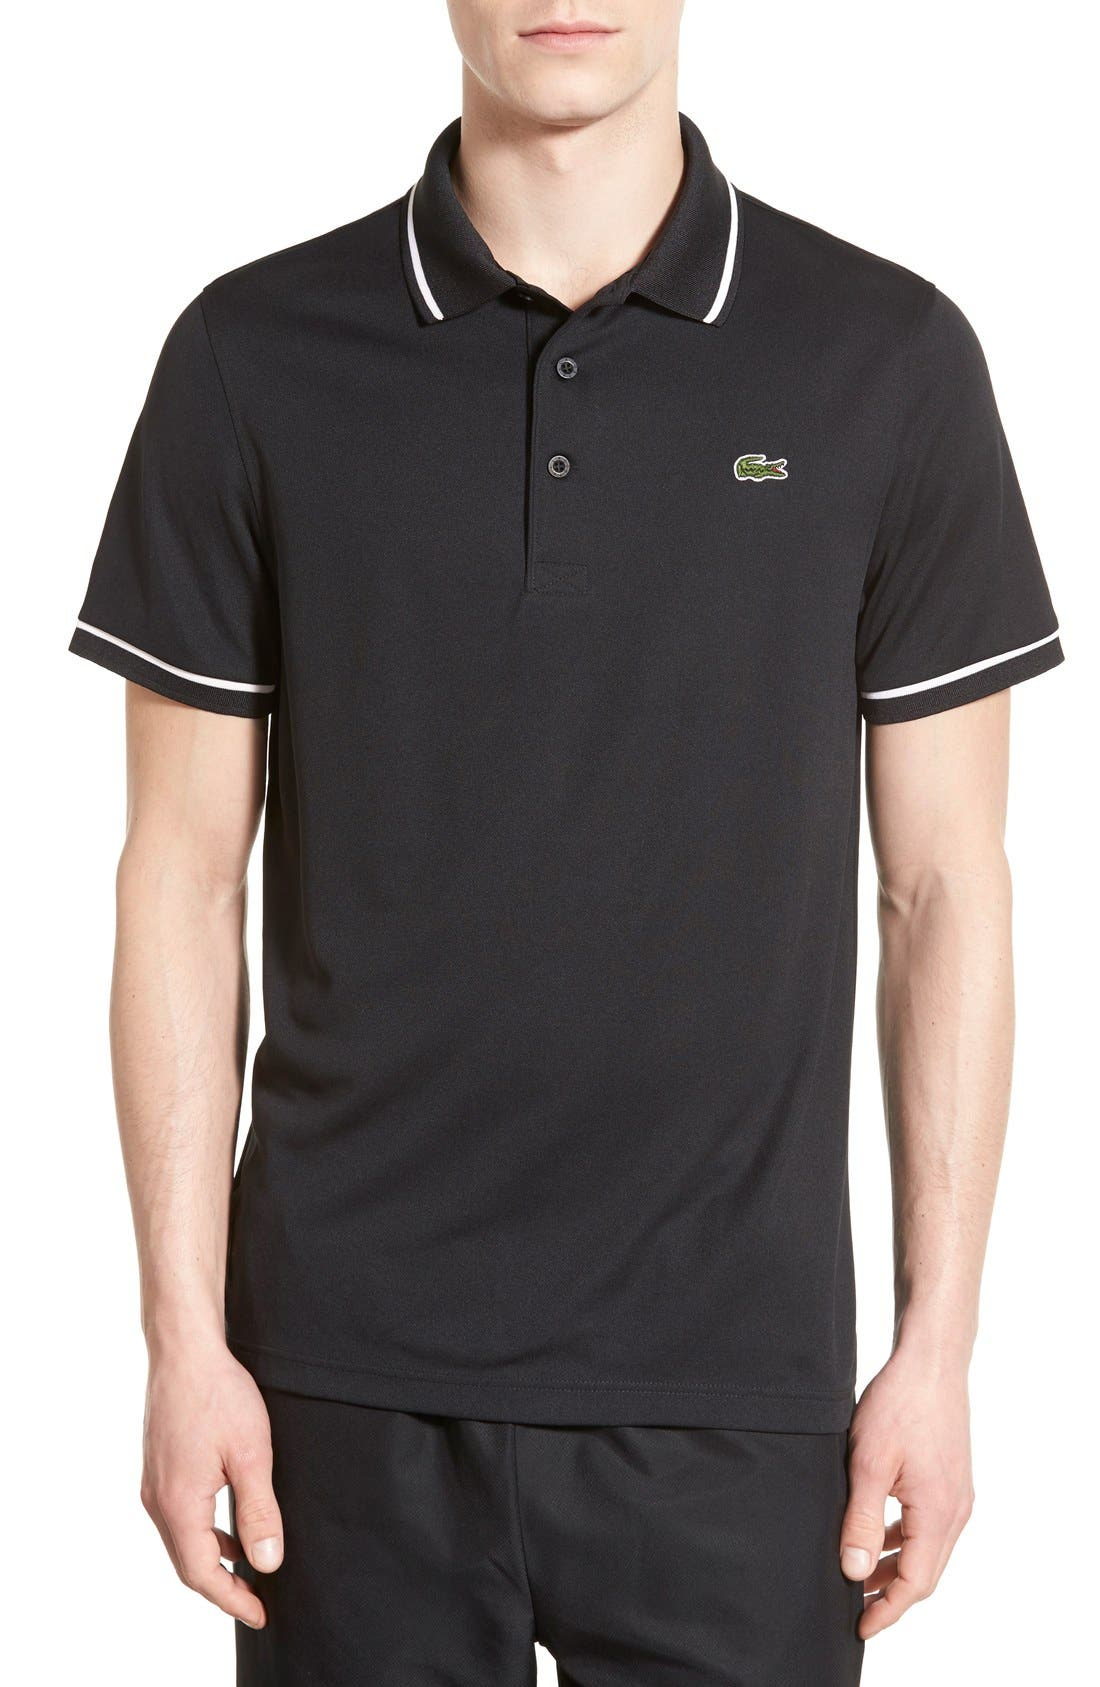 LACOSTE Tipped Quick Dry Piqué Polo, Main, color, BLACK/ WHITE